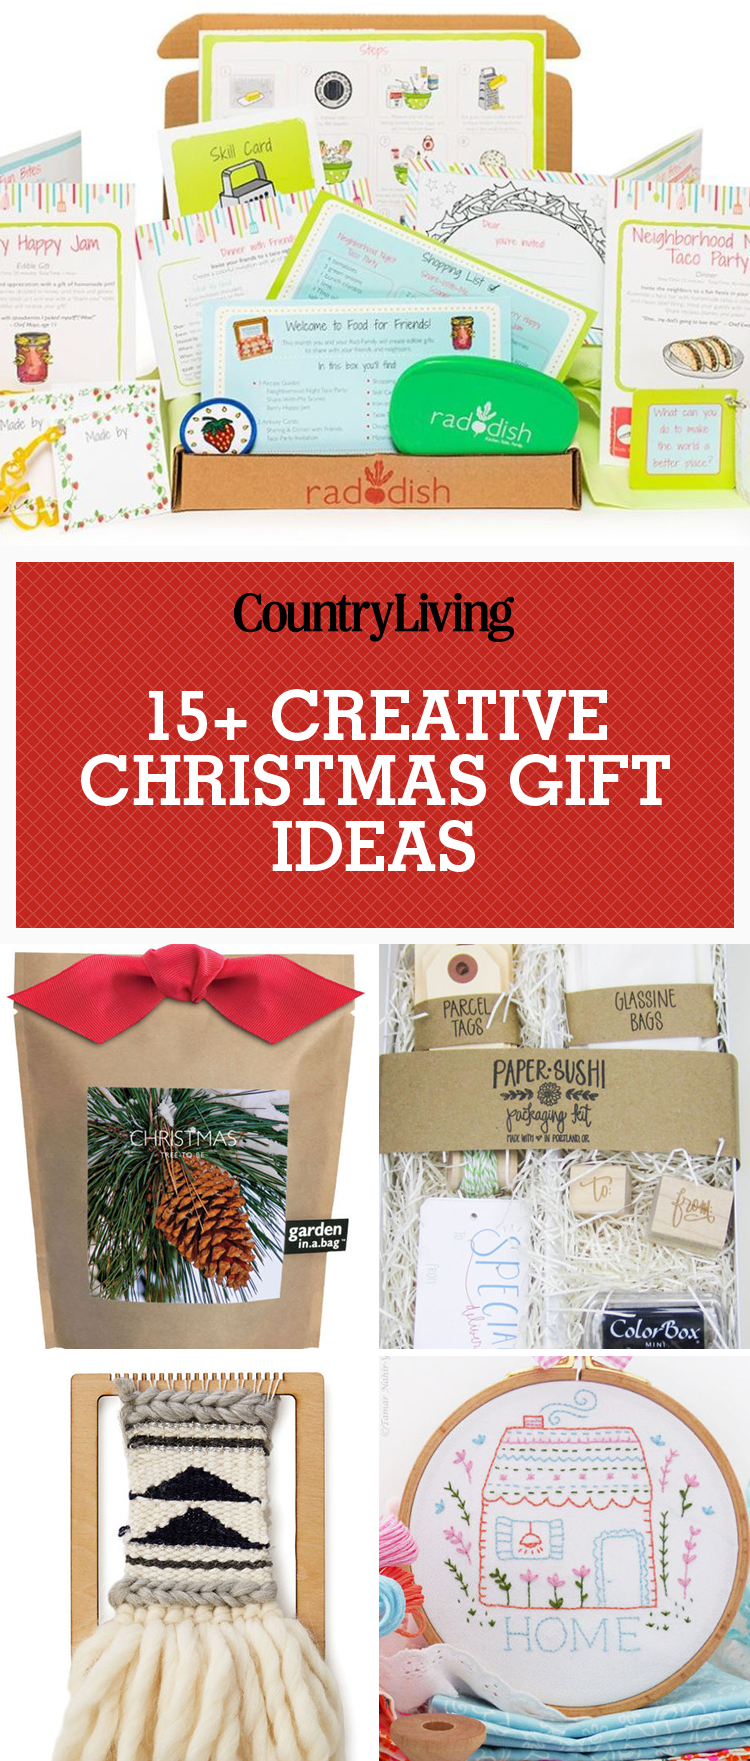 30 Gifts for Crafters - Christmas Gift Ideas for DIYers